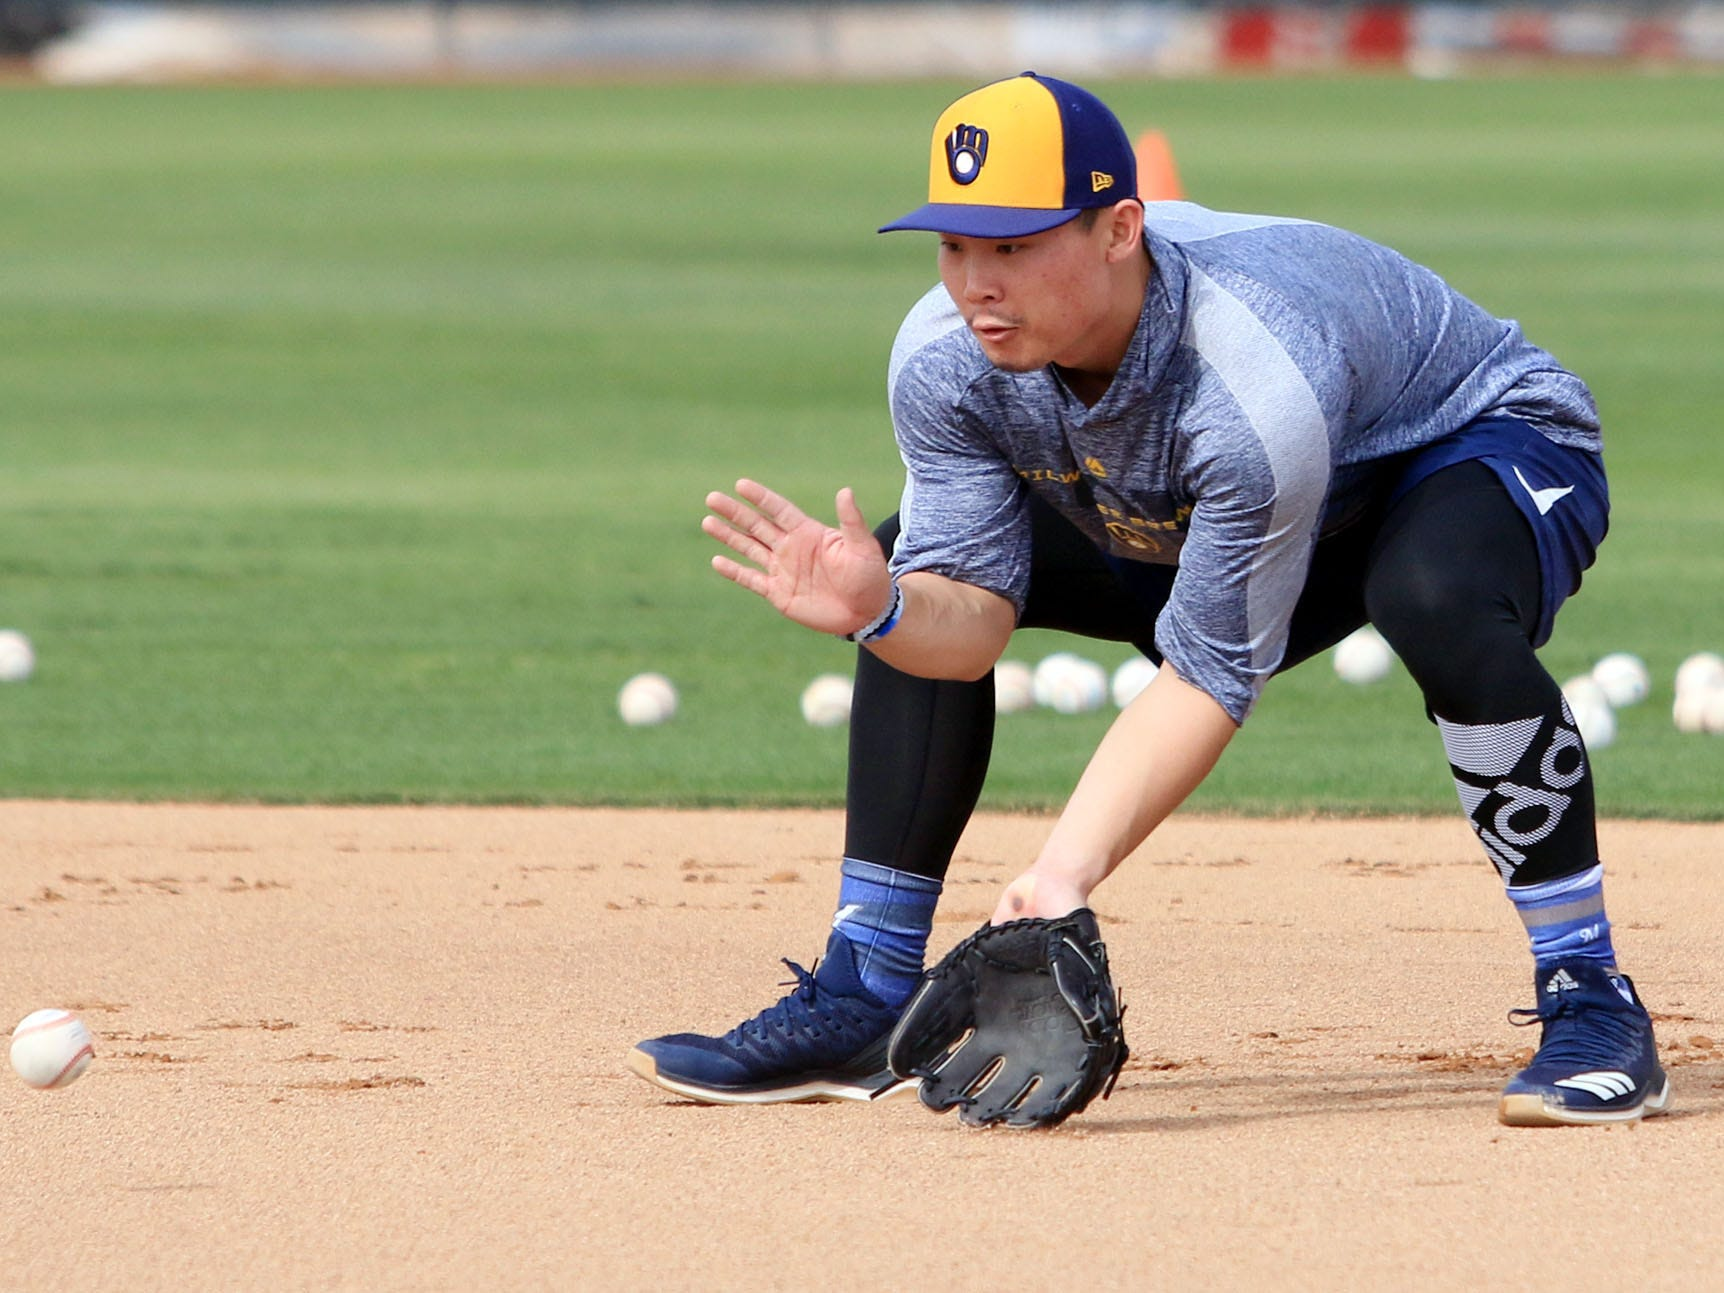 Brewers top-prospect Keston Hiura fields grounders during the first day of spring training practices on Wednesday.